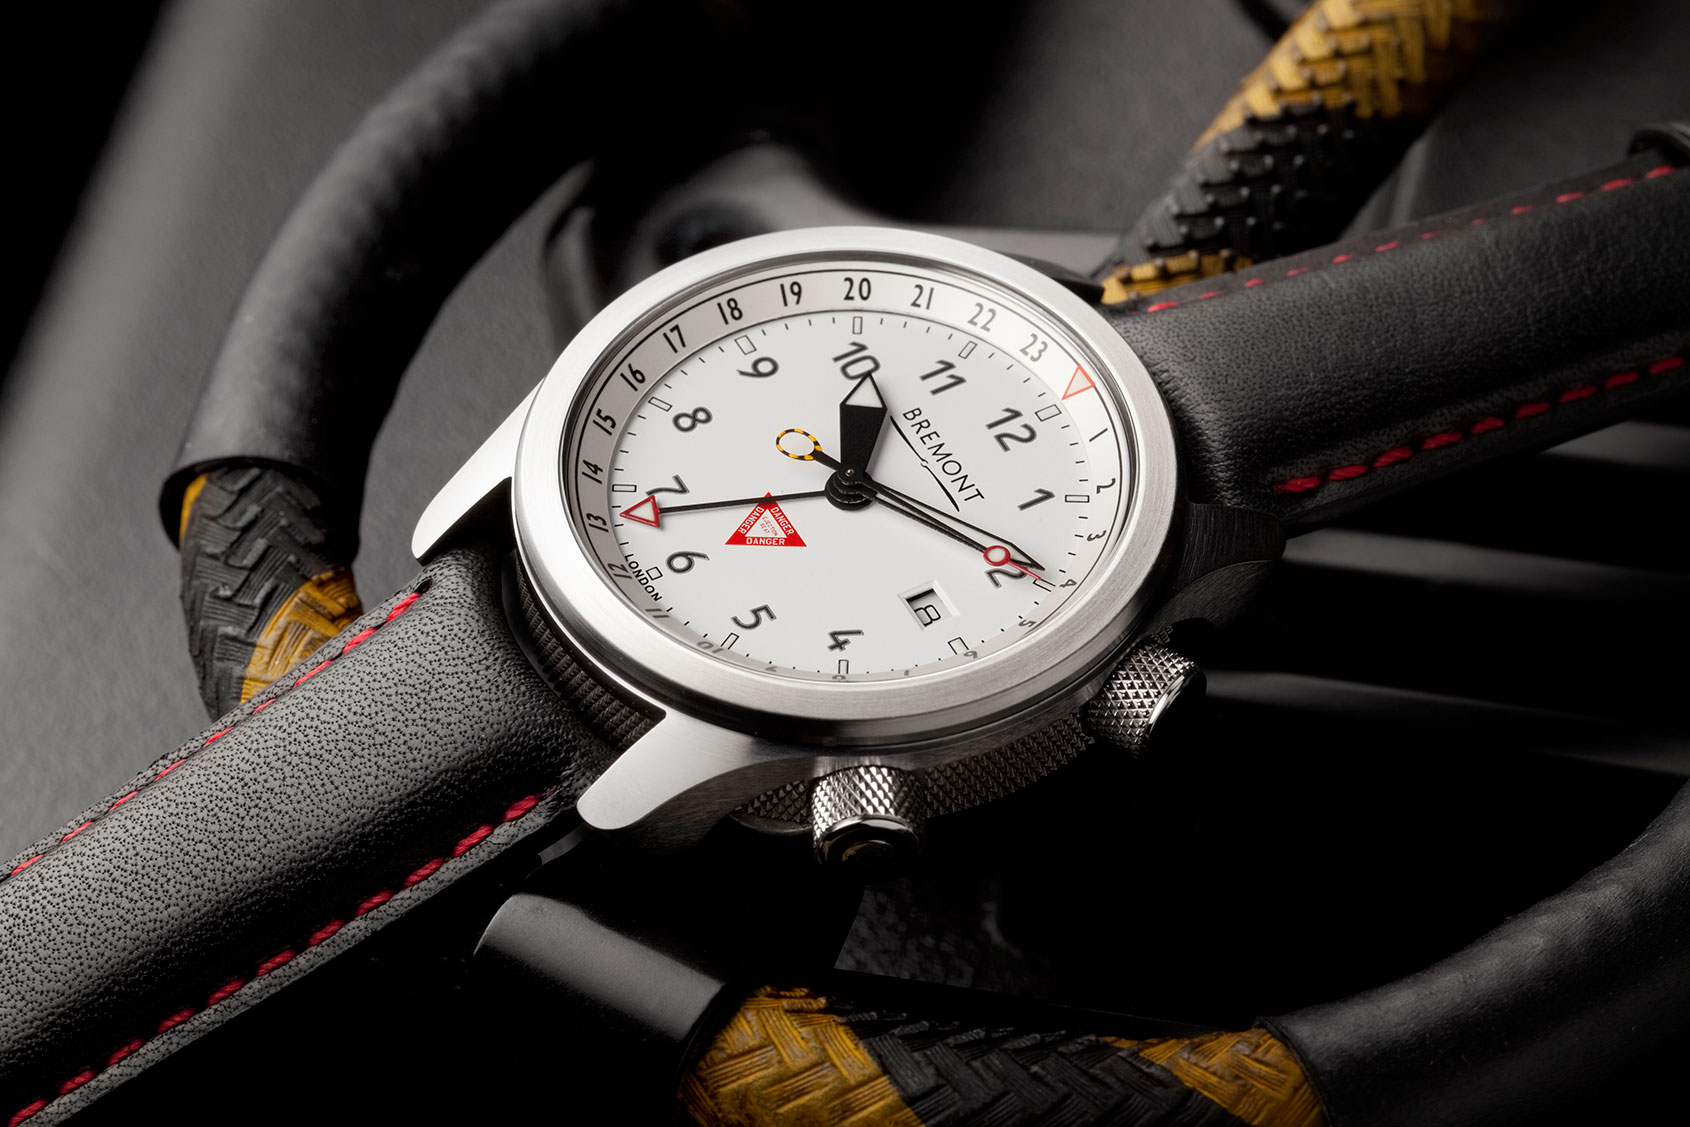 5 things you need to know about Bremont that explain why they have come so far so fast